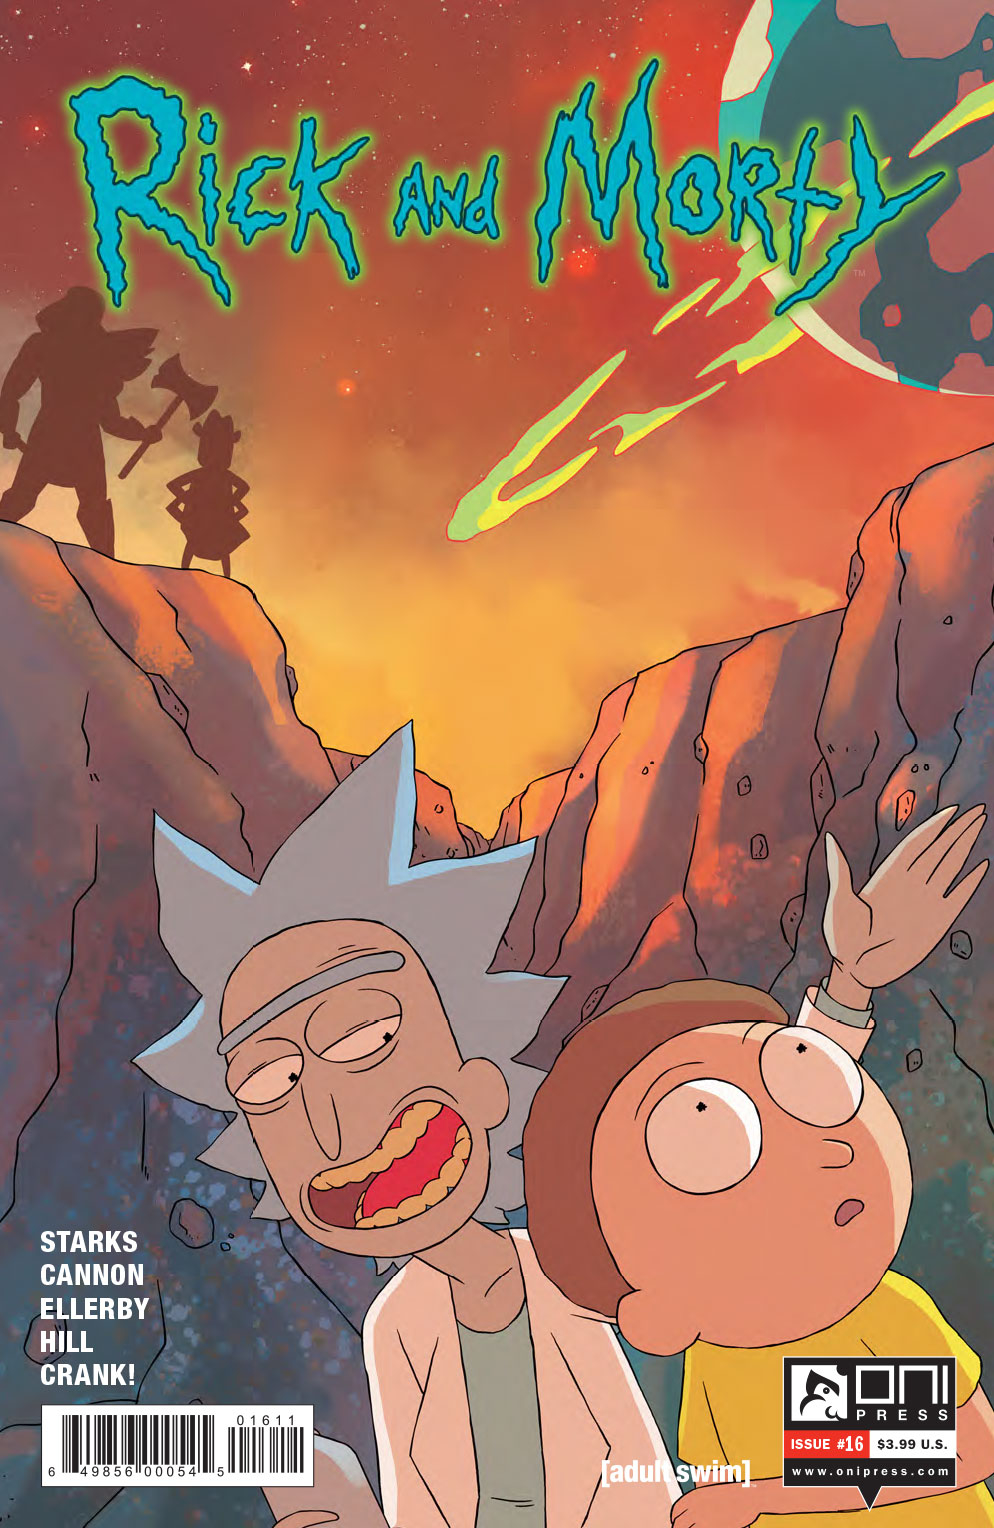 (USE MAY161678) RICK & MORTY #16